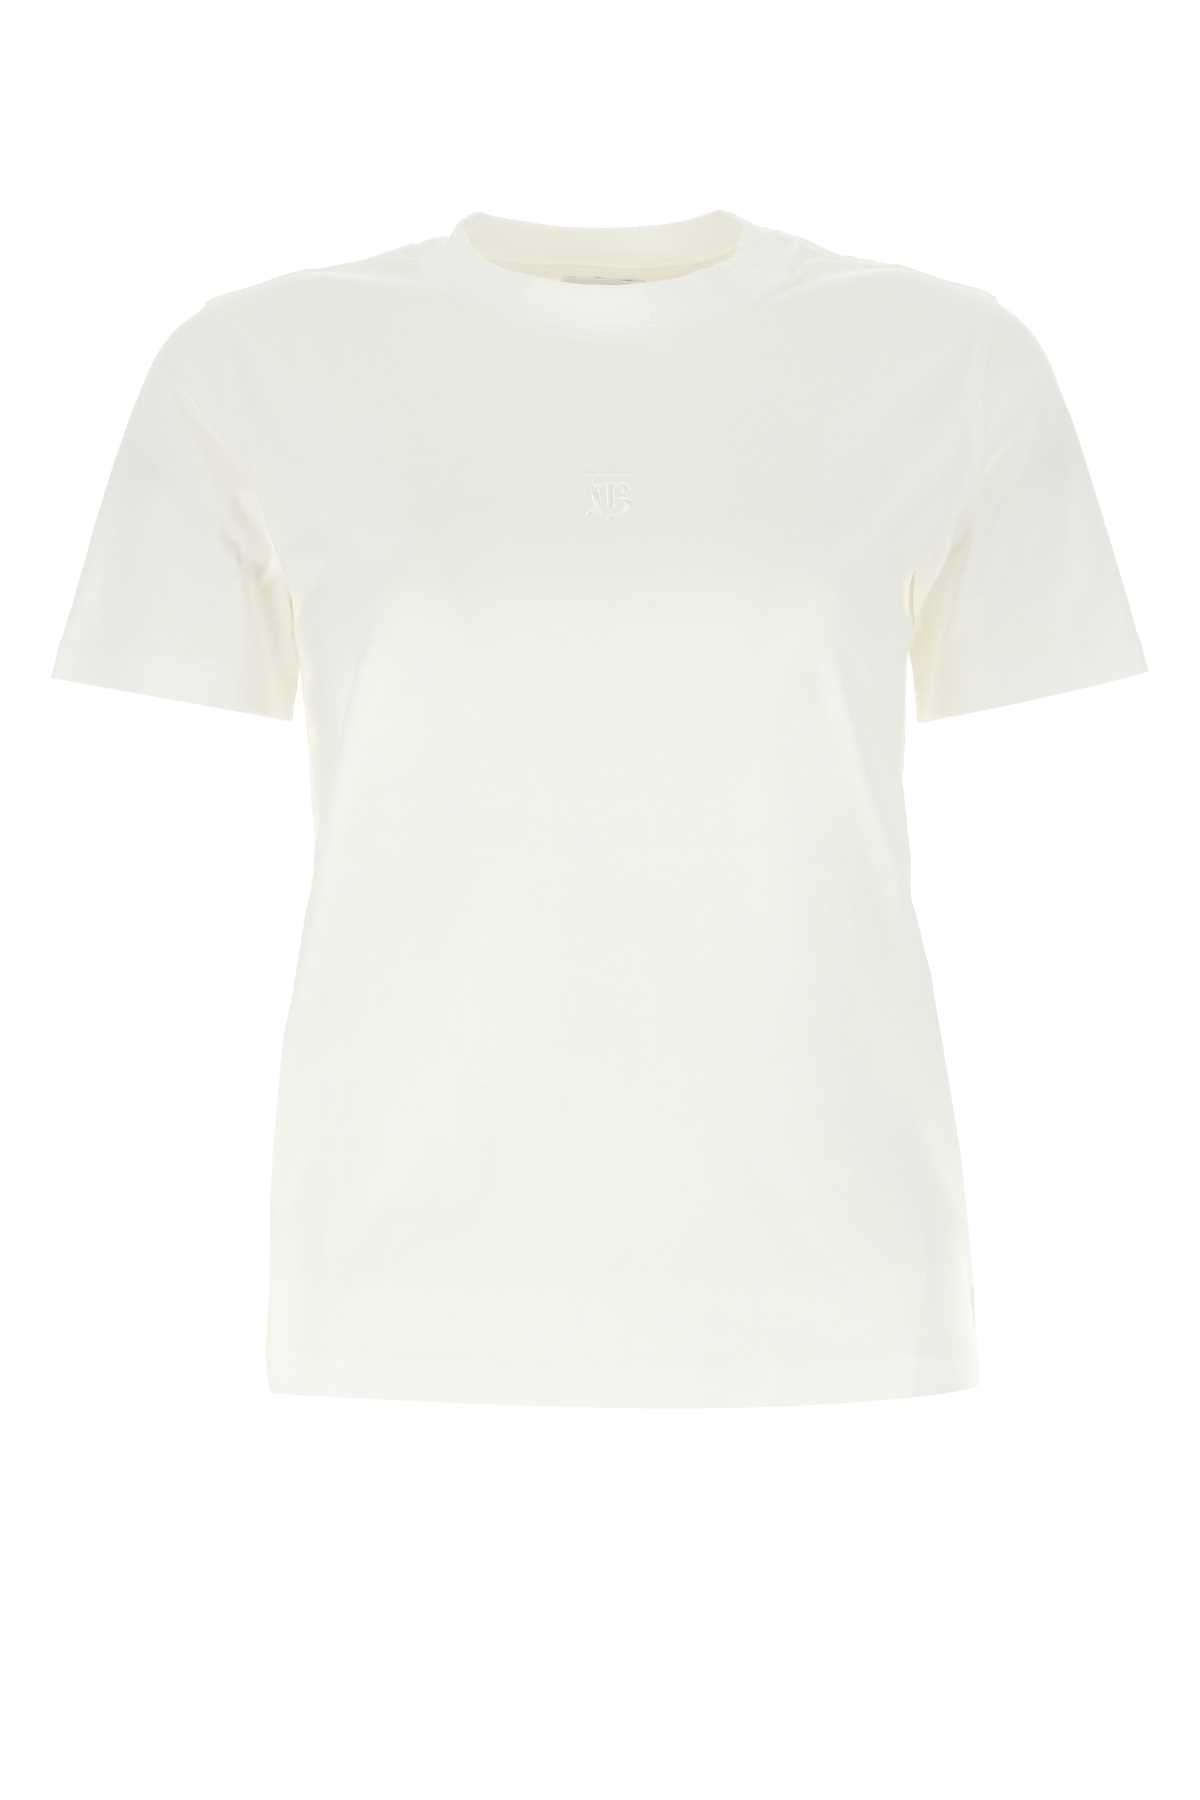 Burberry BURBERRY EMBROIDERED LOGO MONOGRAM T